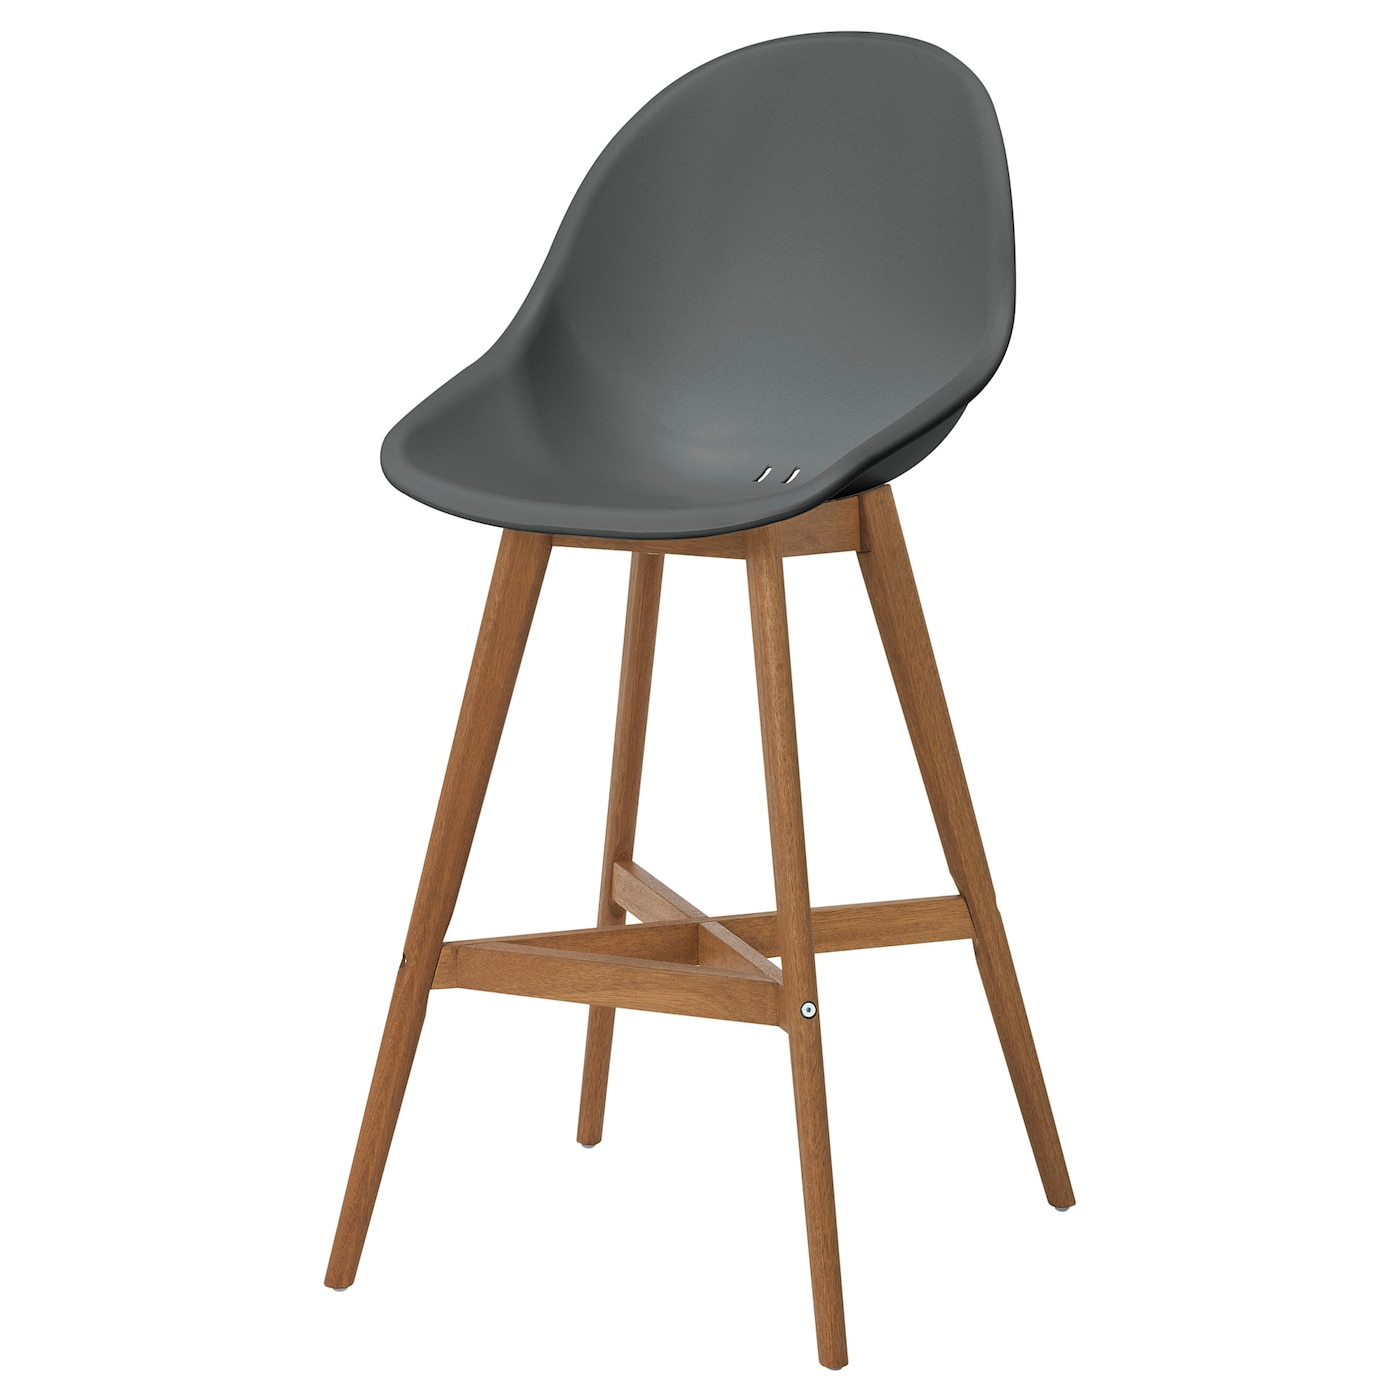 IKEA FANBYN bar stool with backrest You sit comfortably thanks to the shaped back and armrests.